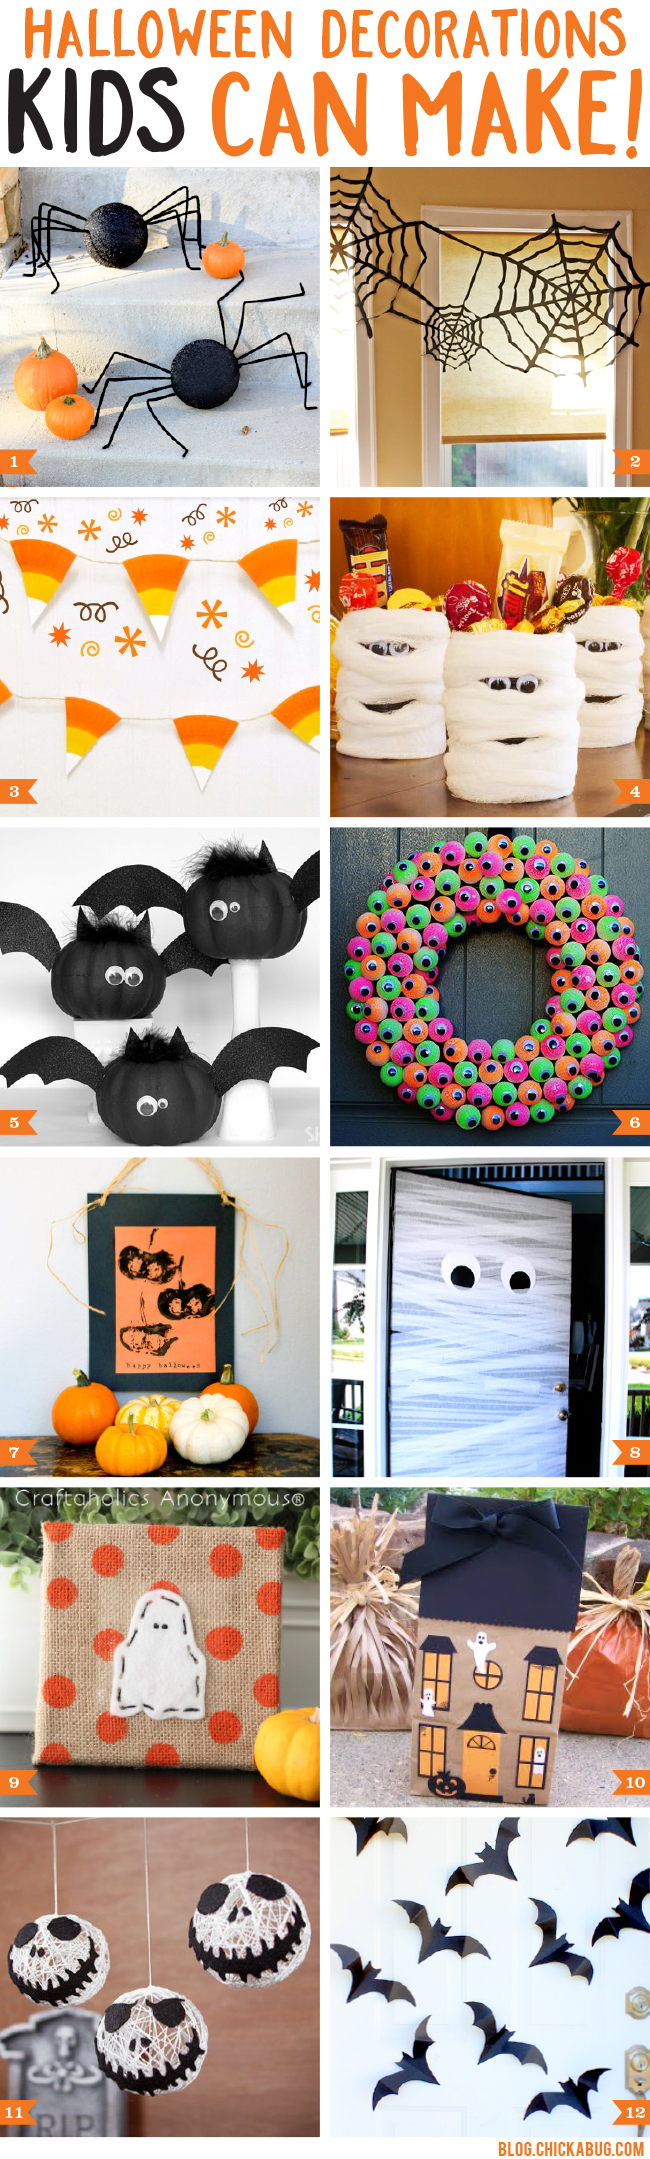 Halloween decorations kids can make